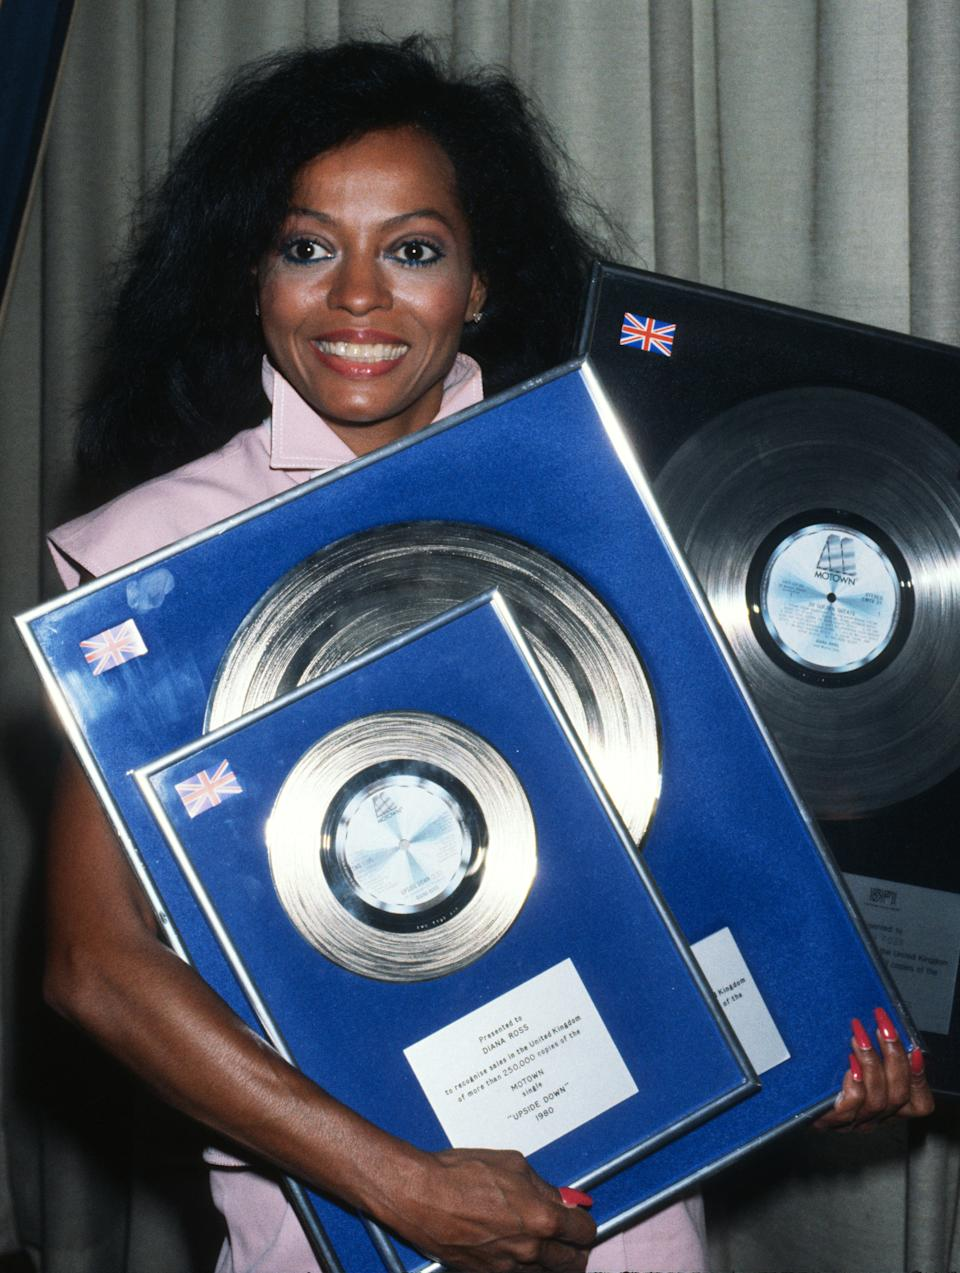 LONDON, ENGLAND - MARCH 01:  Singer Diana Ross receives an award for the sale of her Motown single 'Upside Down' during a visit to England in 1980 in London,  England. (Photo by Anwar Hussein/Getty Images)